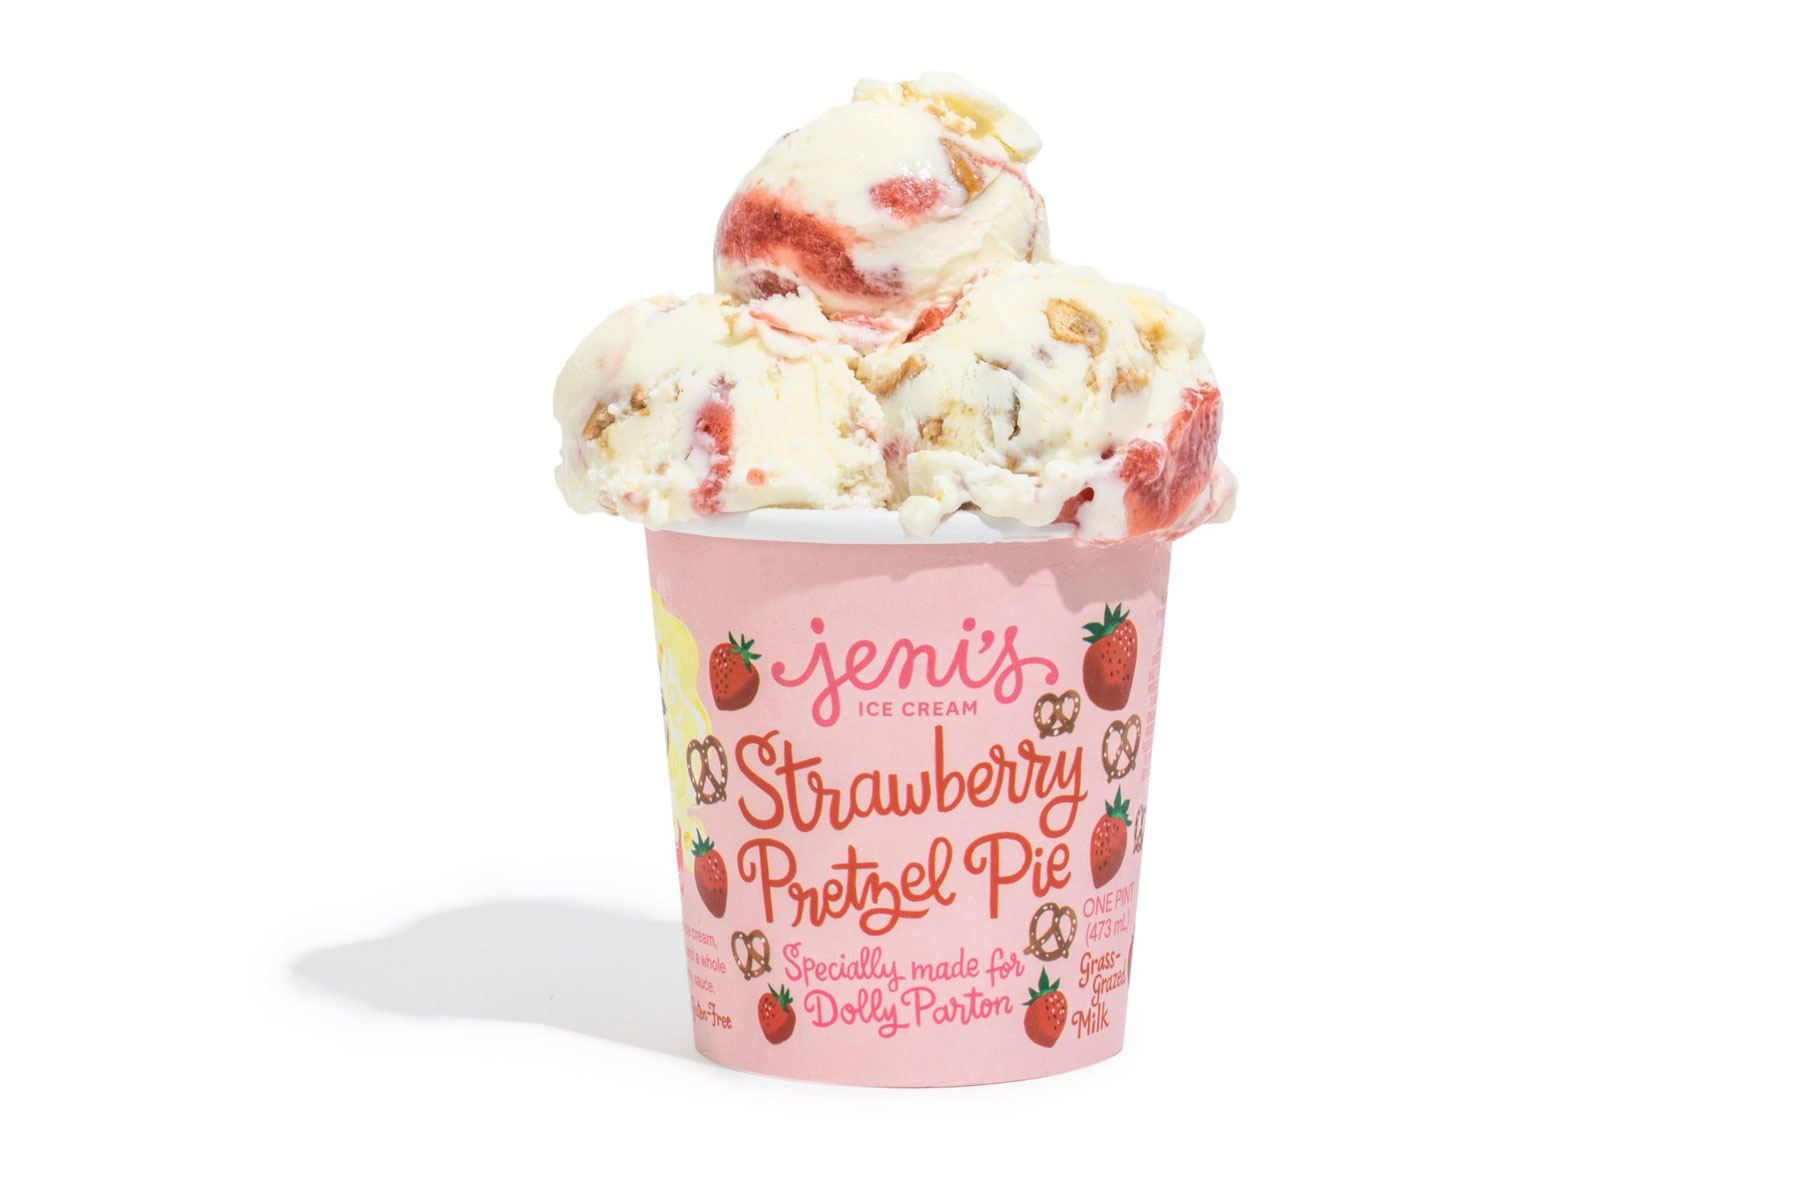 Strawberry Pretzel Pie ice cream pint